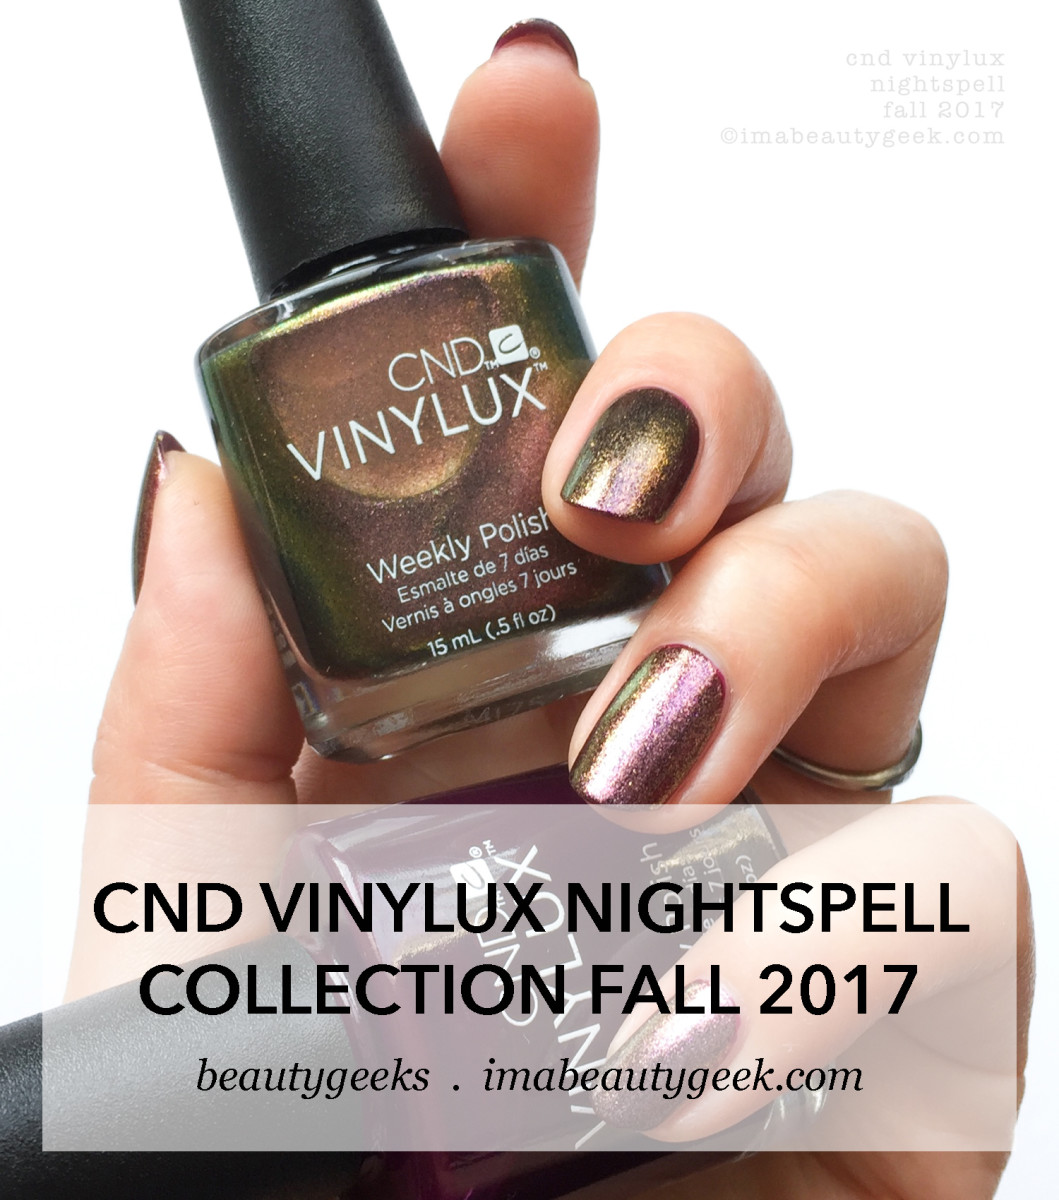 CND Vinylux Nightspell Fall 2017 collection swatches & review-BEAUTYGEEKS